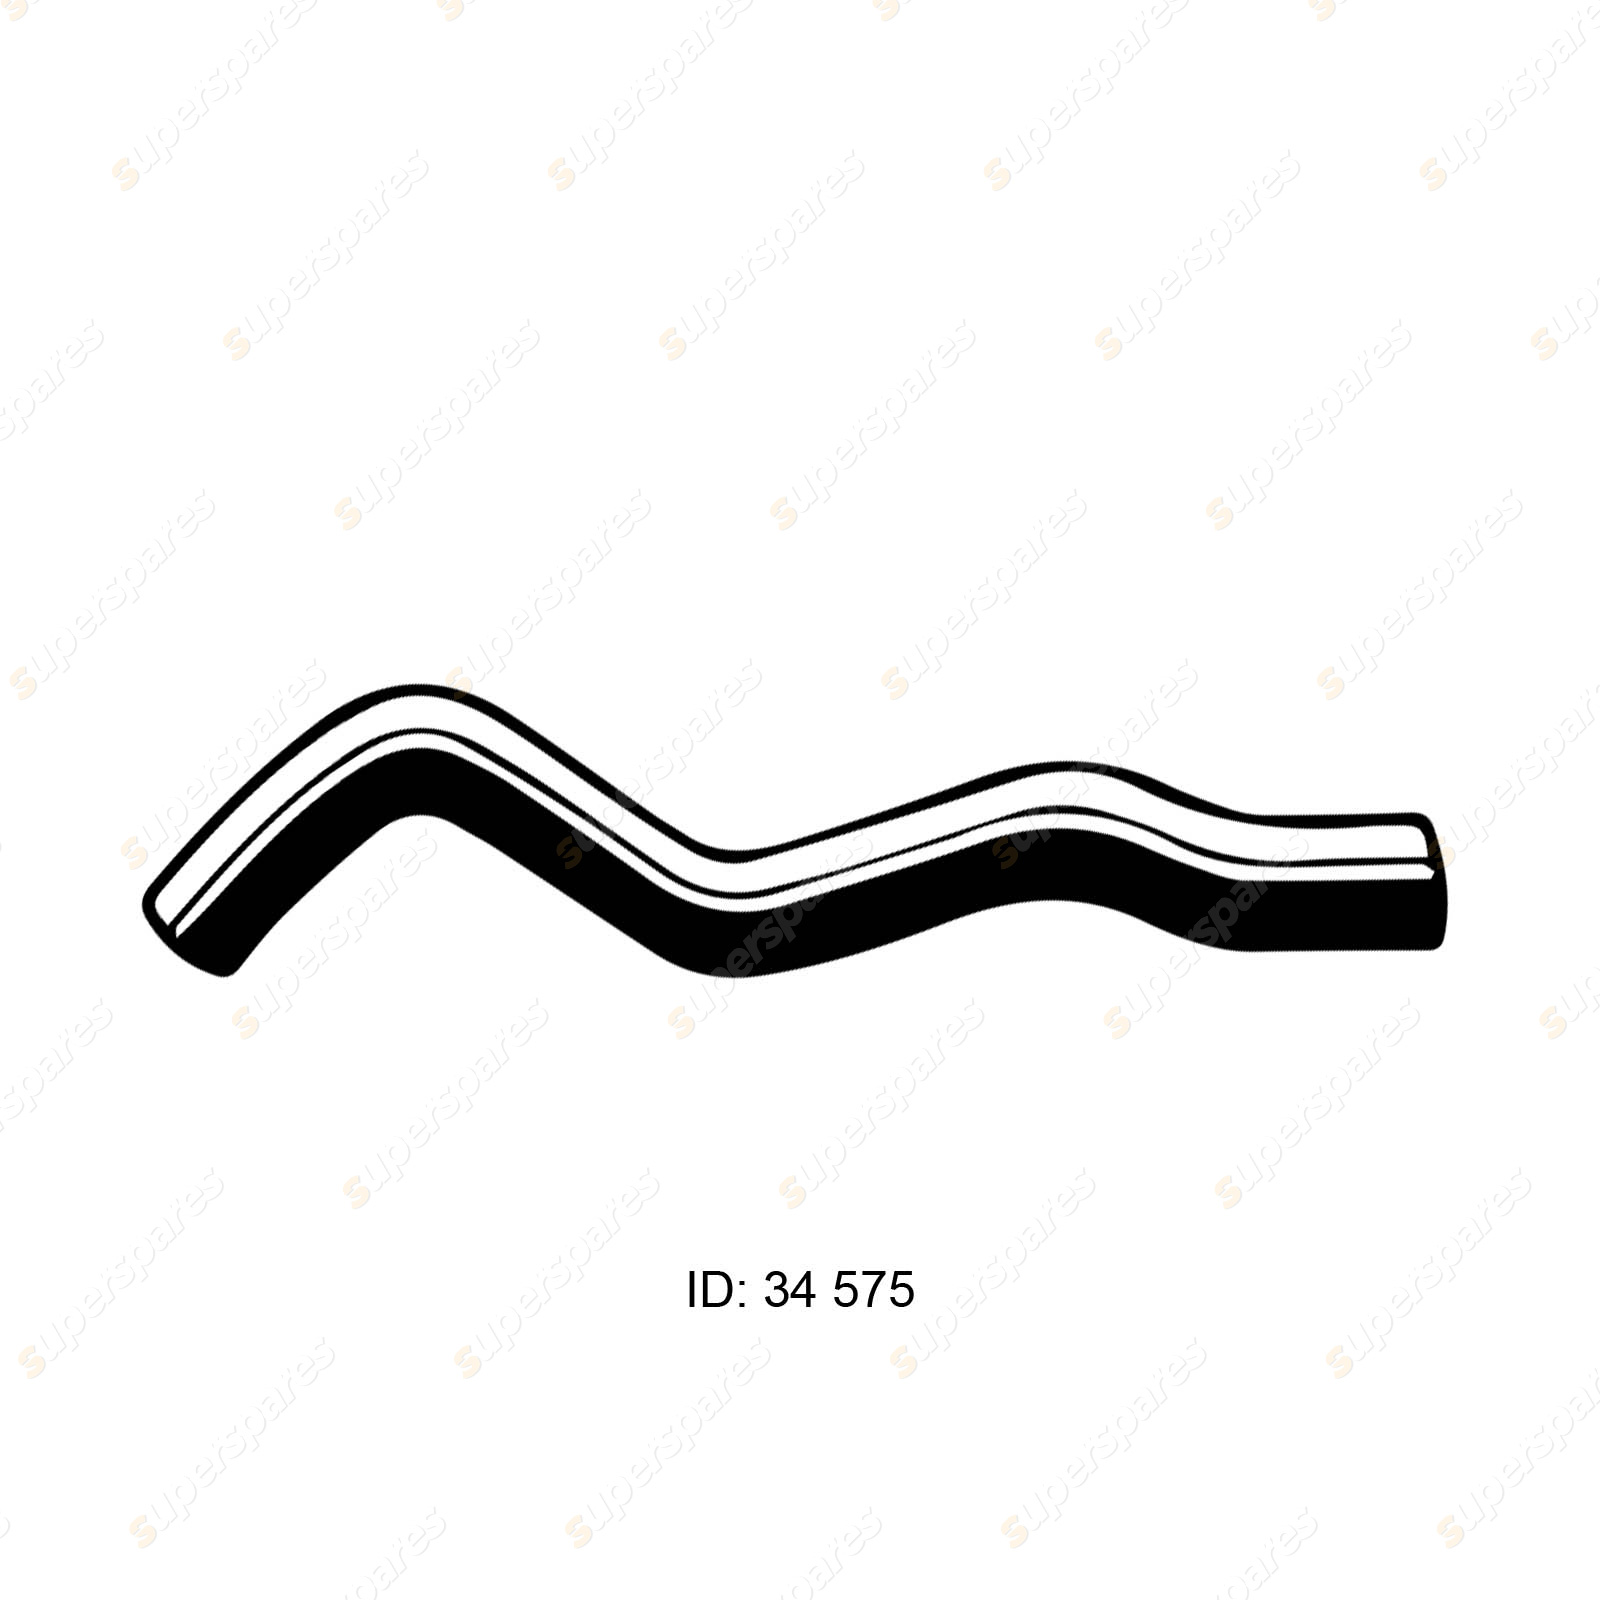 Gates Lower Radiator Curved Hose for Mitsubishi Galant HJ